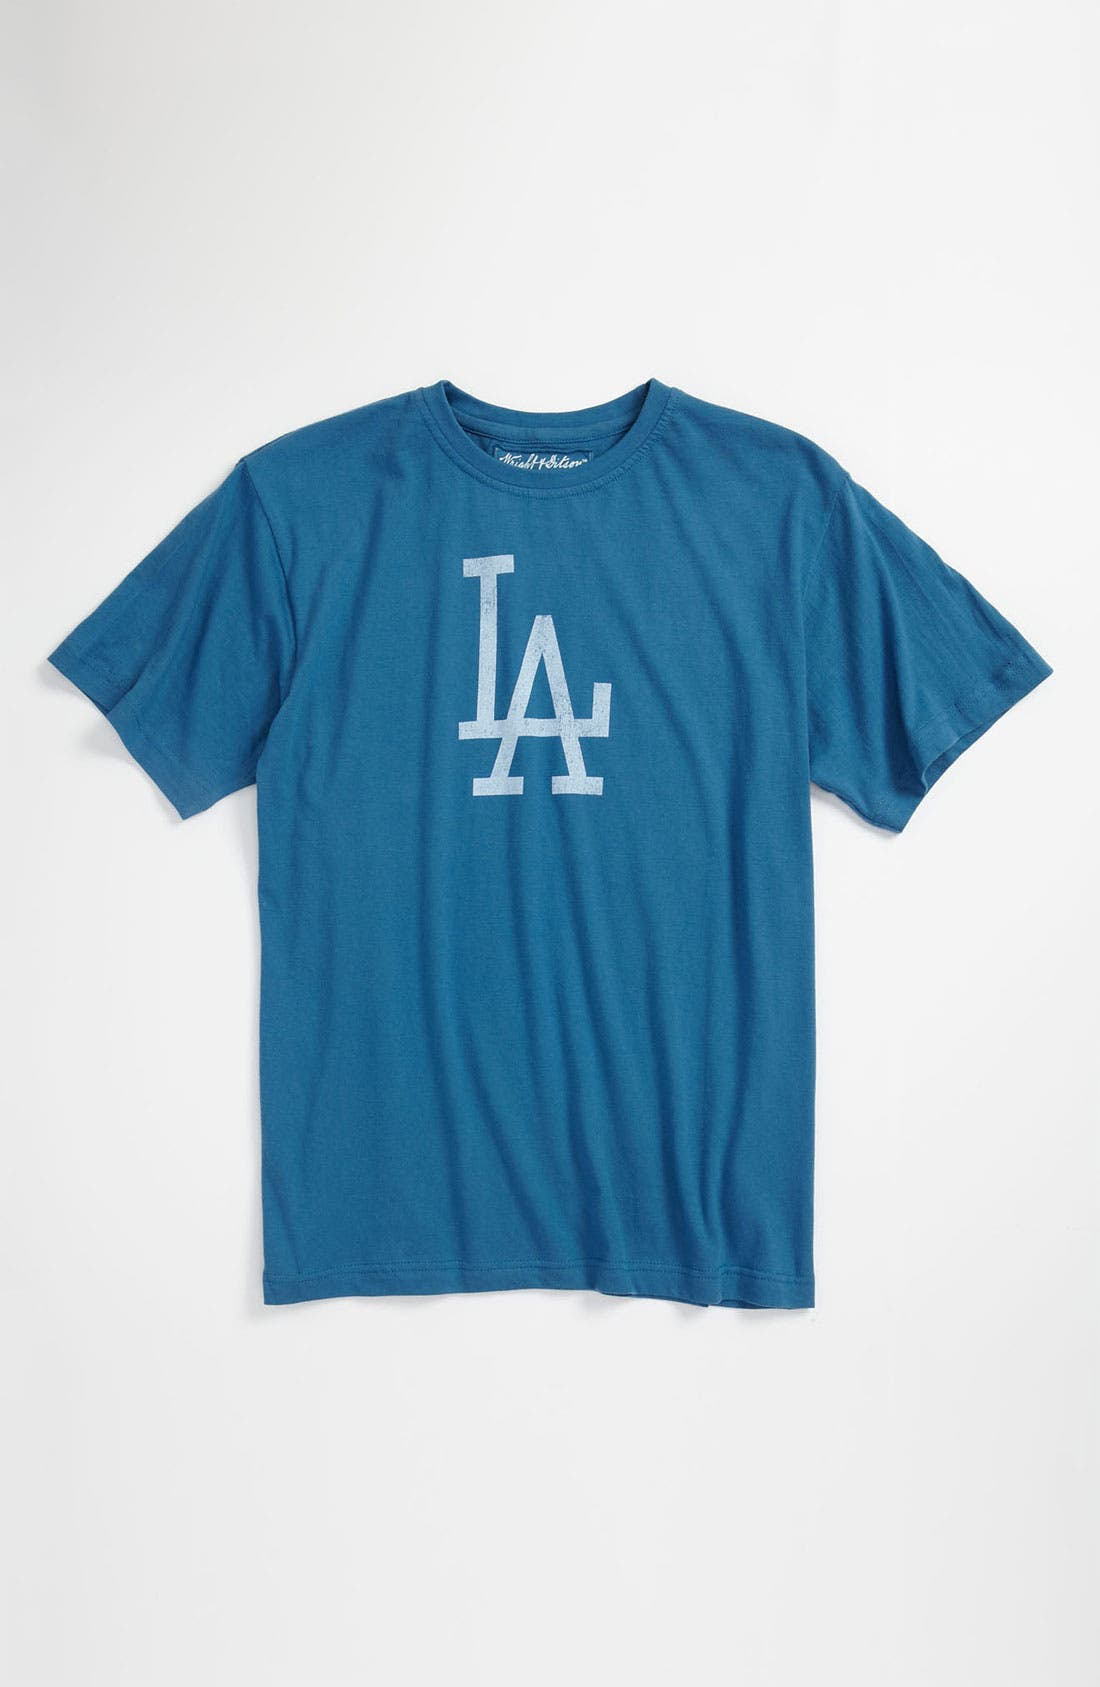 WRIGHT & DITSON Los Angeles Dodgers T-Shirt